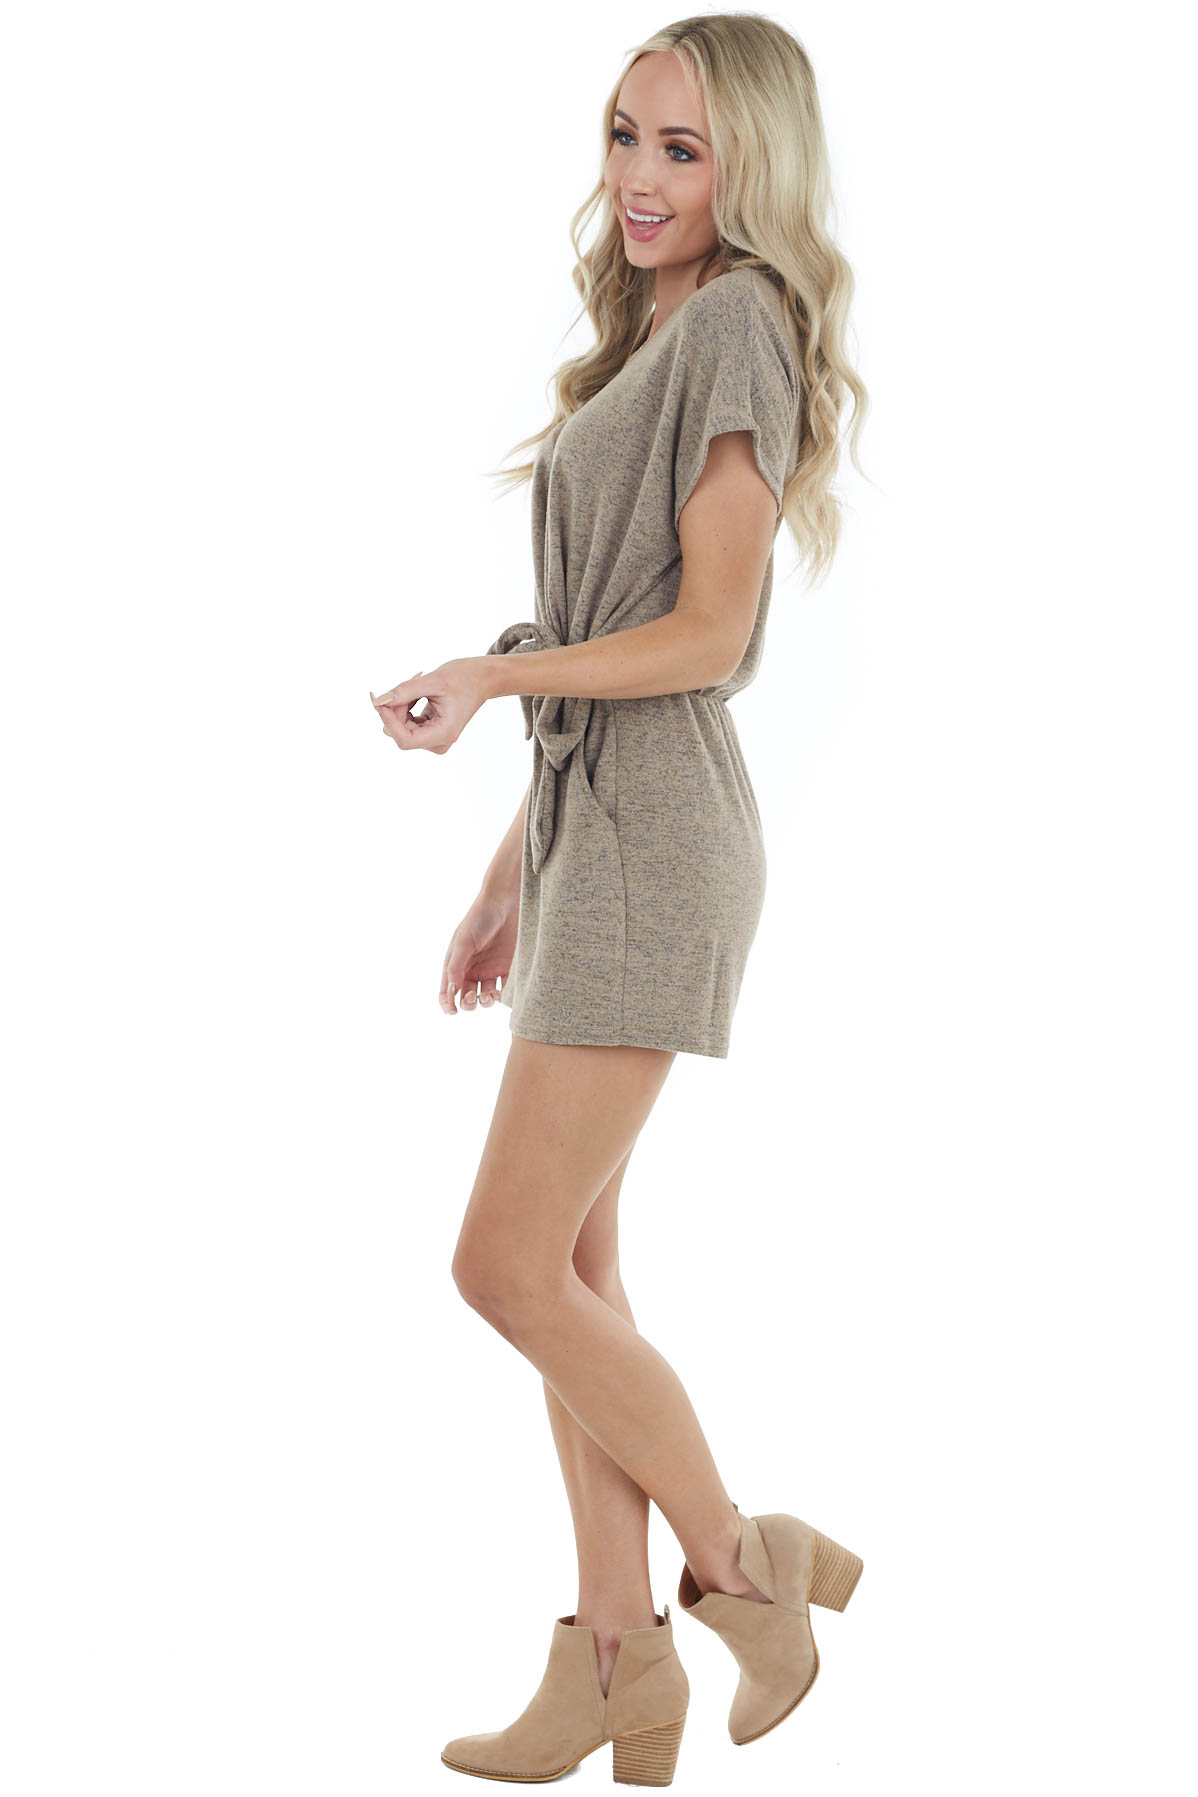 Heathered Walnut Short Sleeve Knit Romper with Front Tie